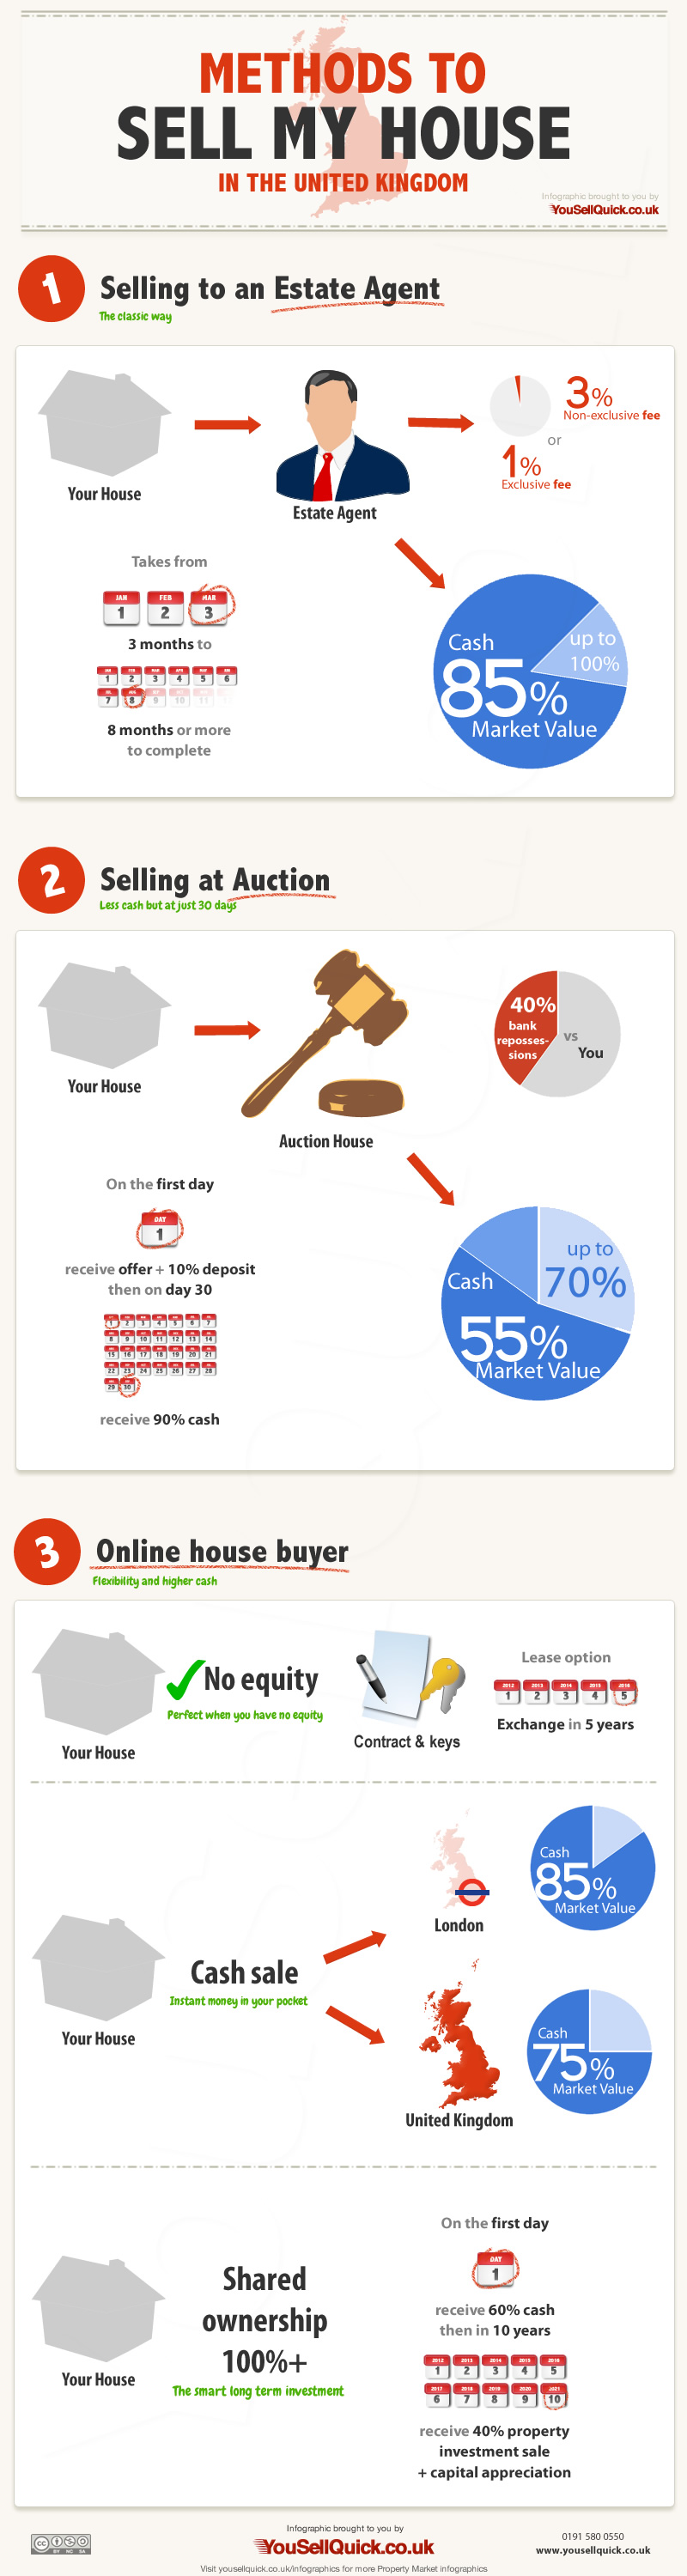 sell my house in the uk infographic infographics king